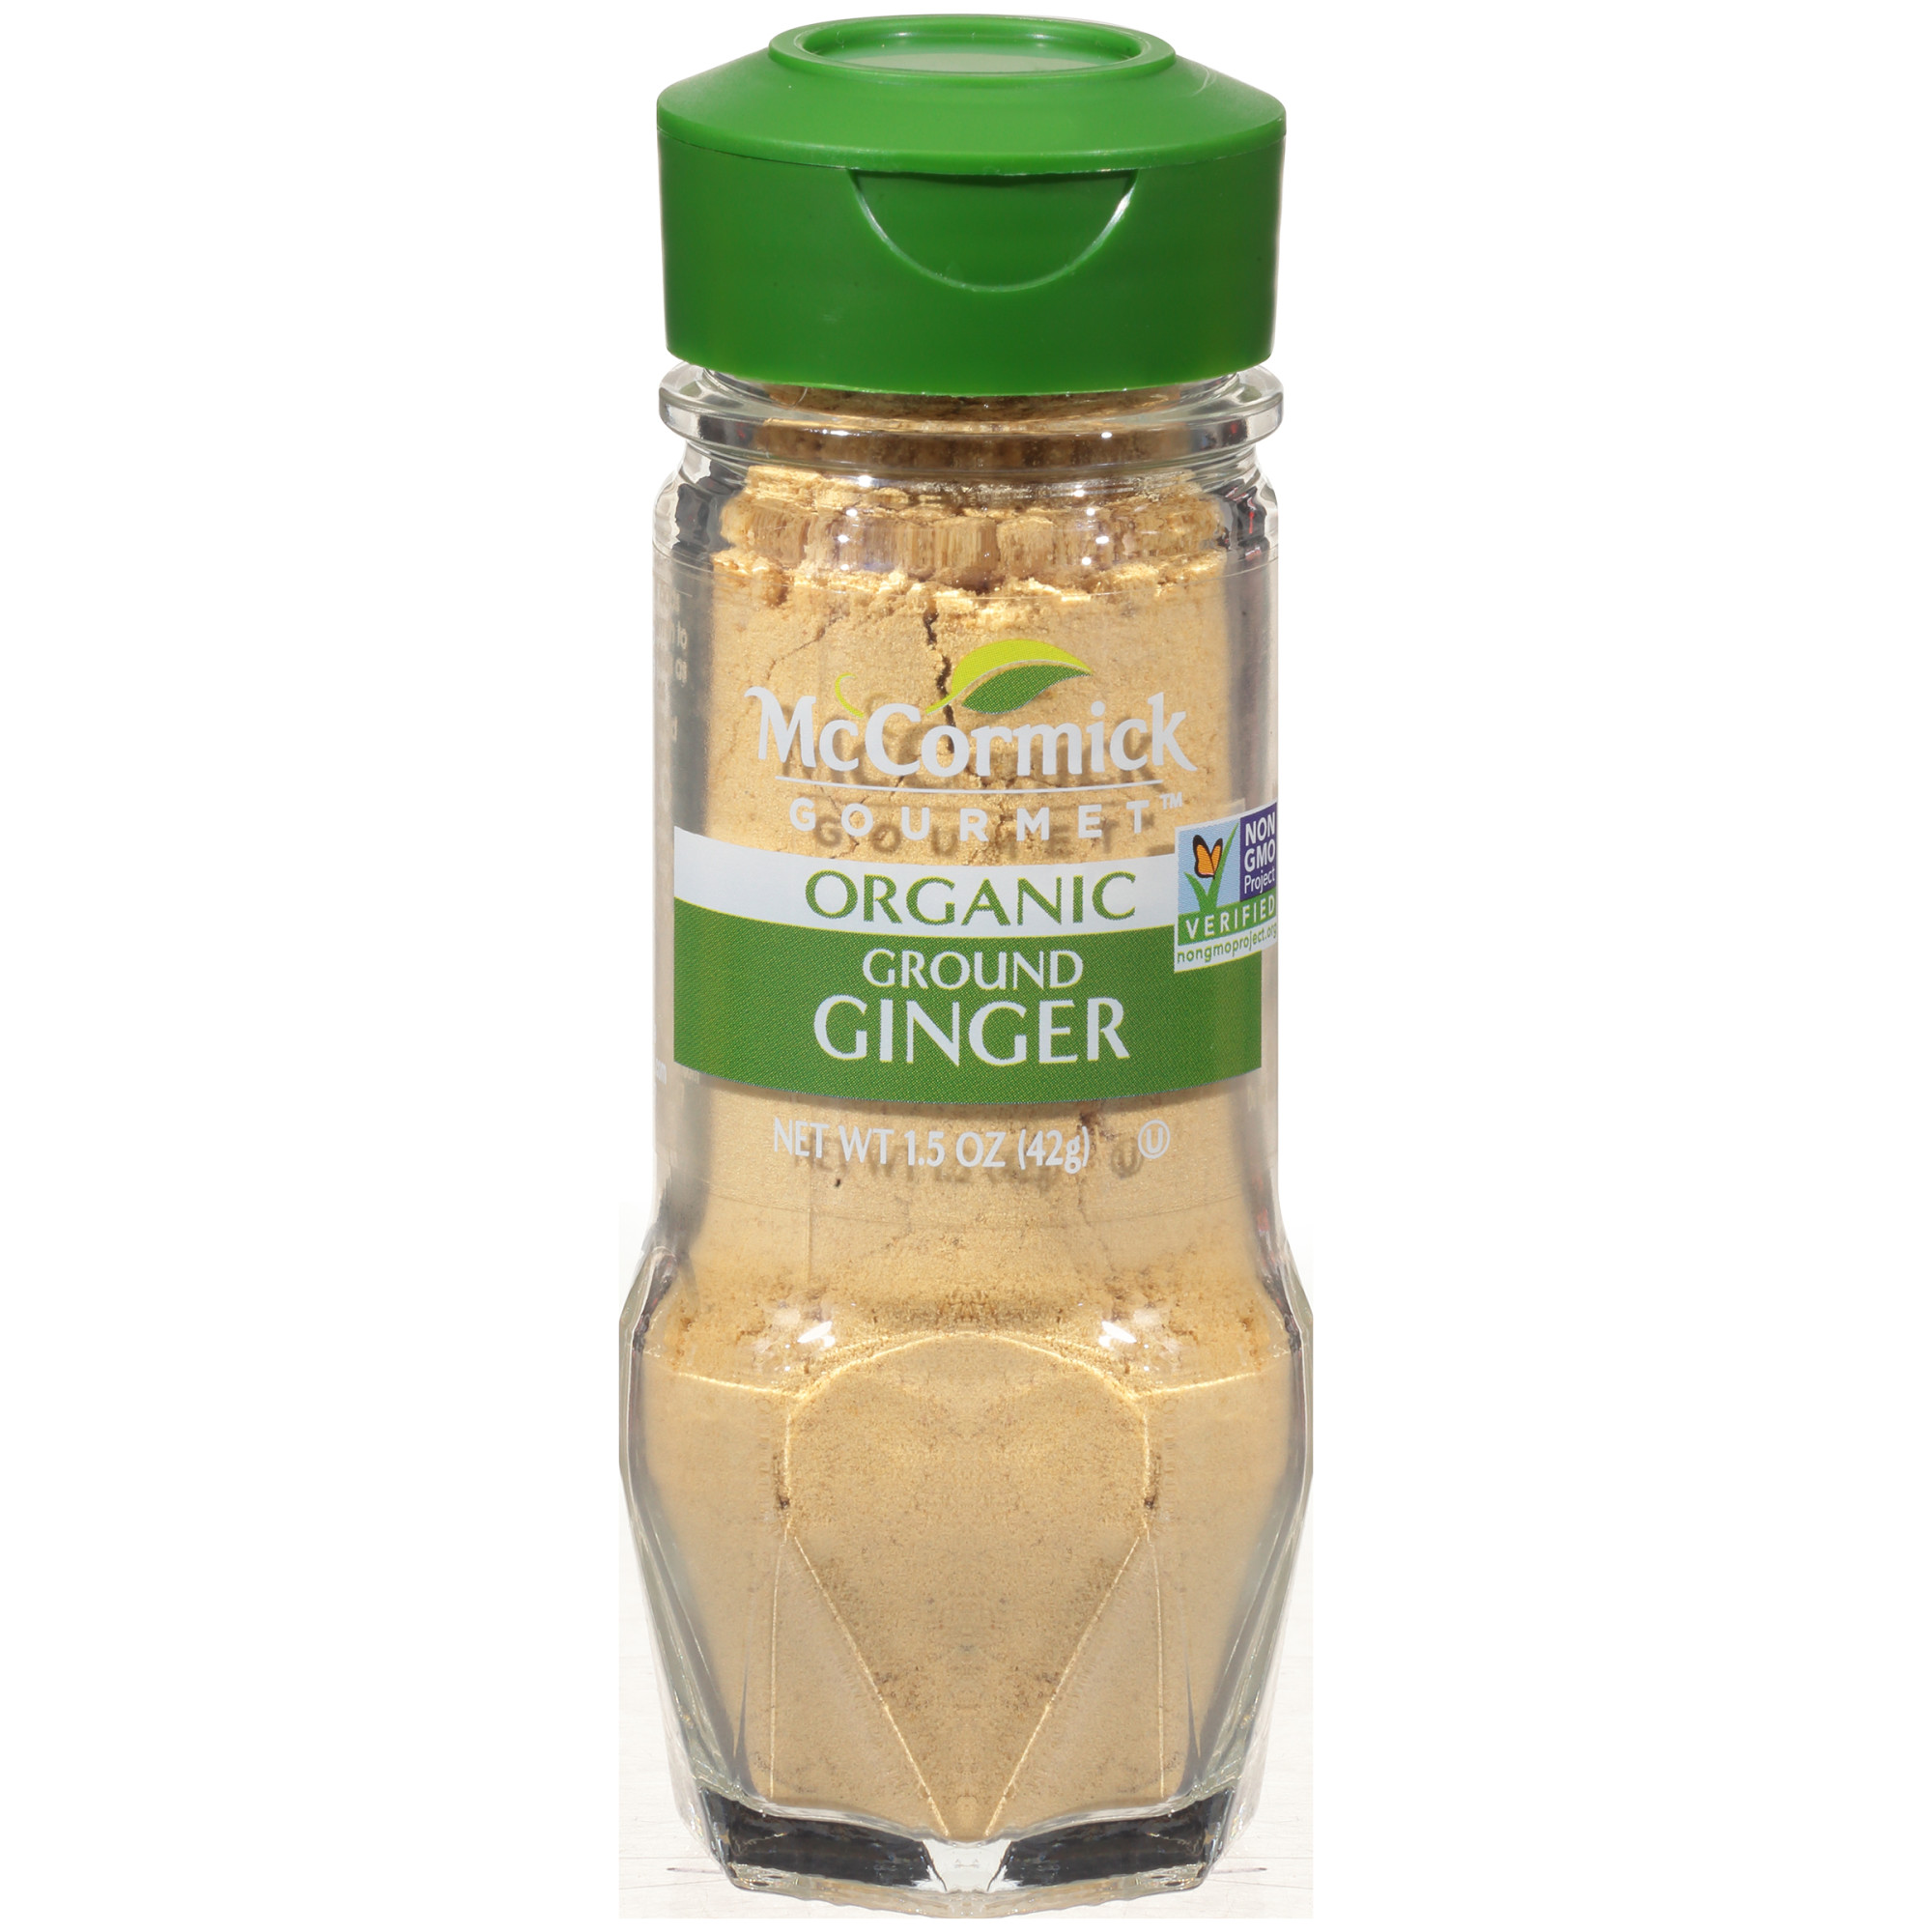 McCormick Gourmet Organic Ground Ginger, 1.5 oz